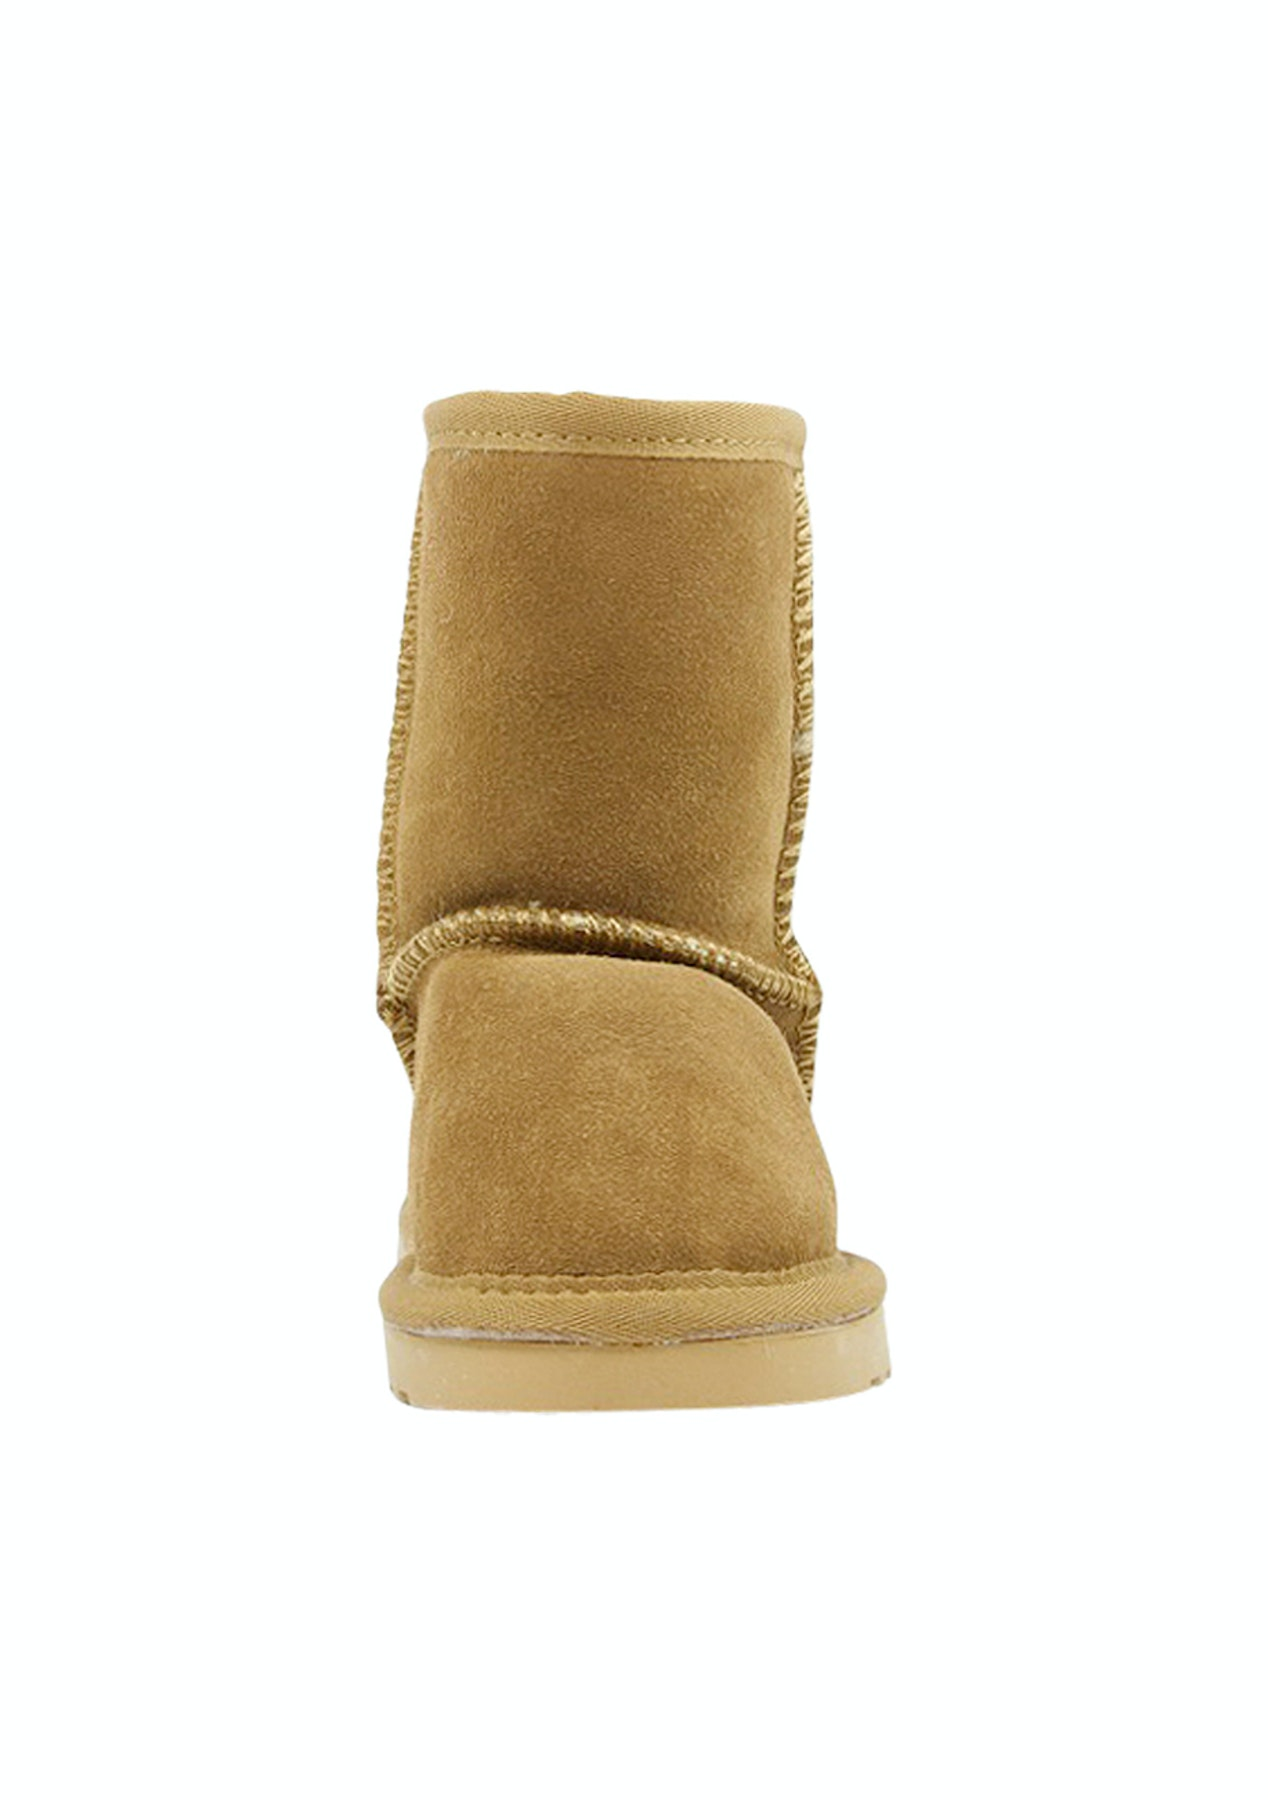 6ee8f5813157 Auzland Ugg Kids Classic Boots Bea Chestnut - Auzland Uggs From  37.99 -  Onceit